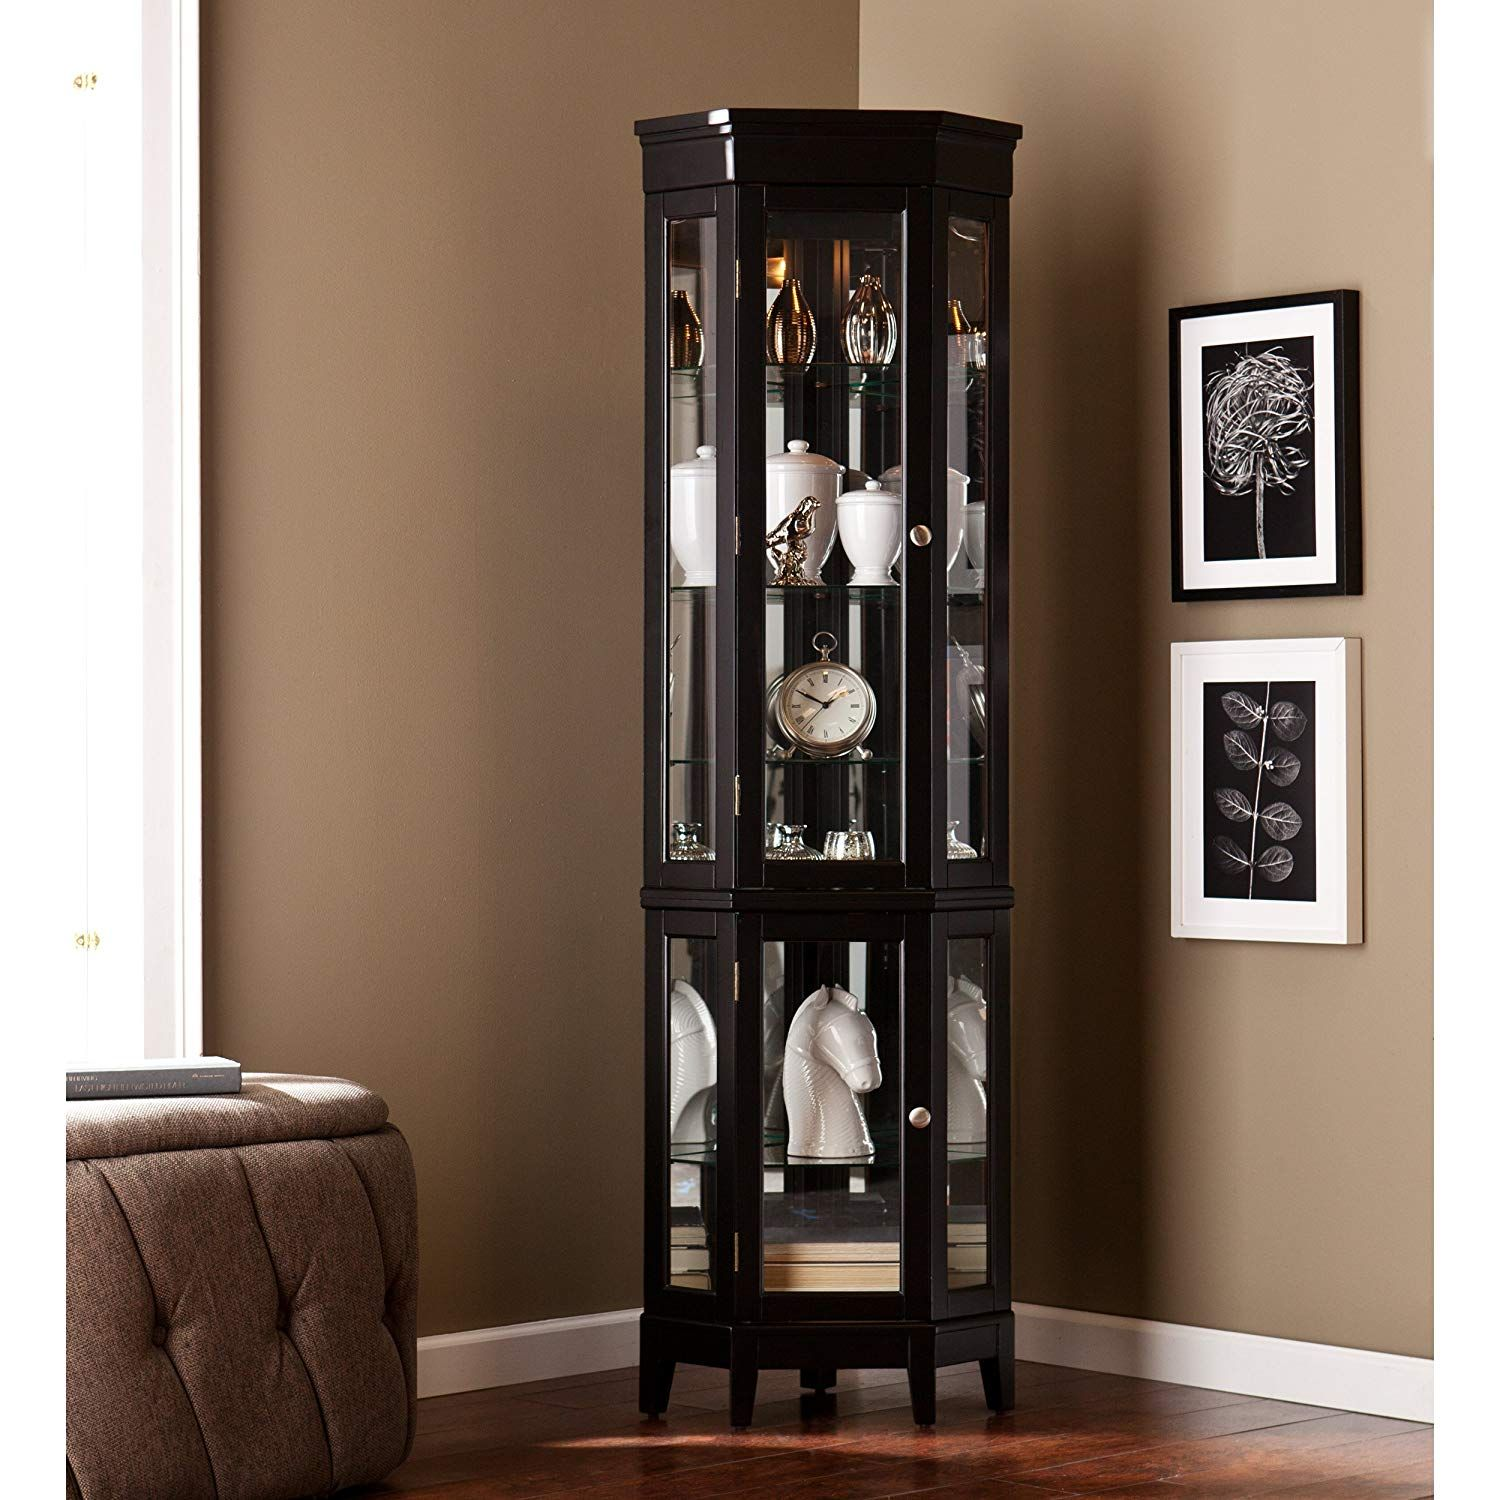 Details About Lighted Corner Display Curio Dual Cabinet ... on Corner Sconce Shelf Cabinet id=36323